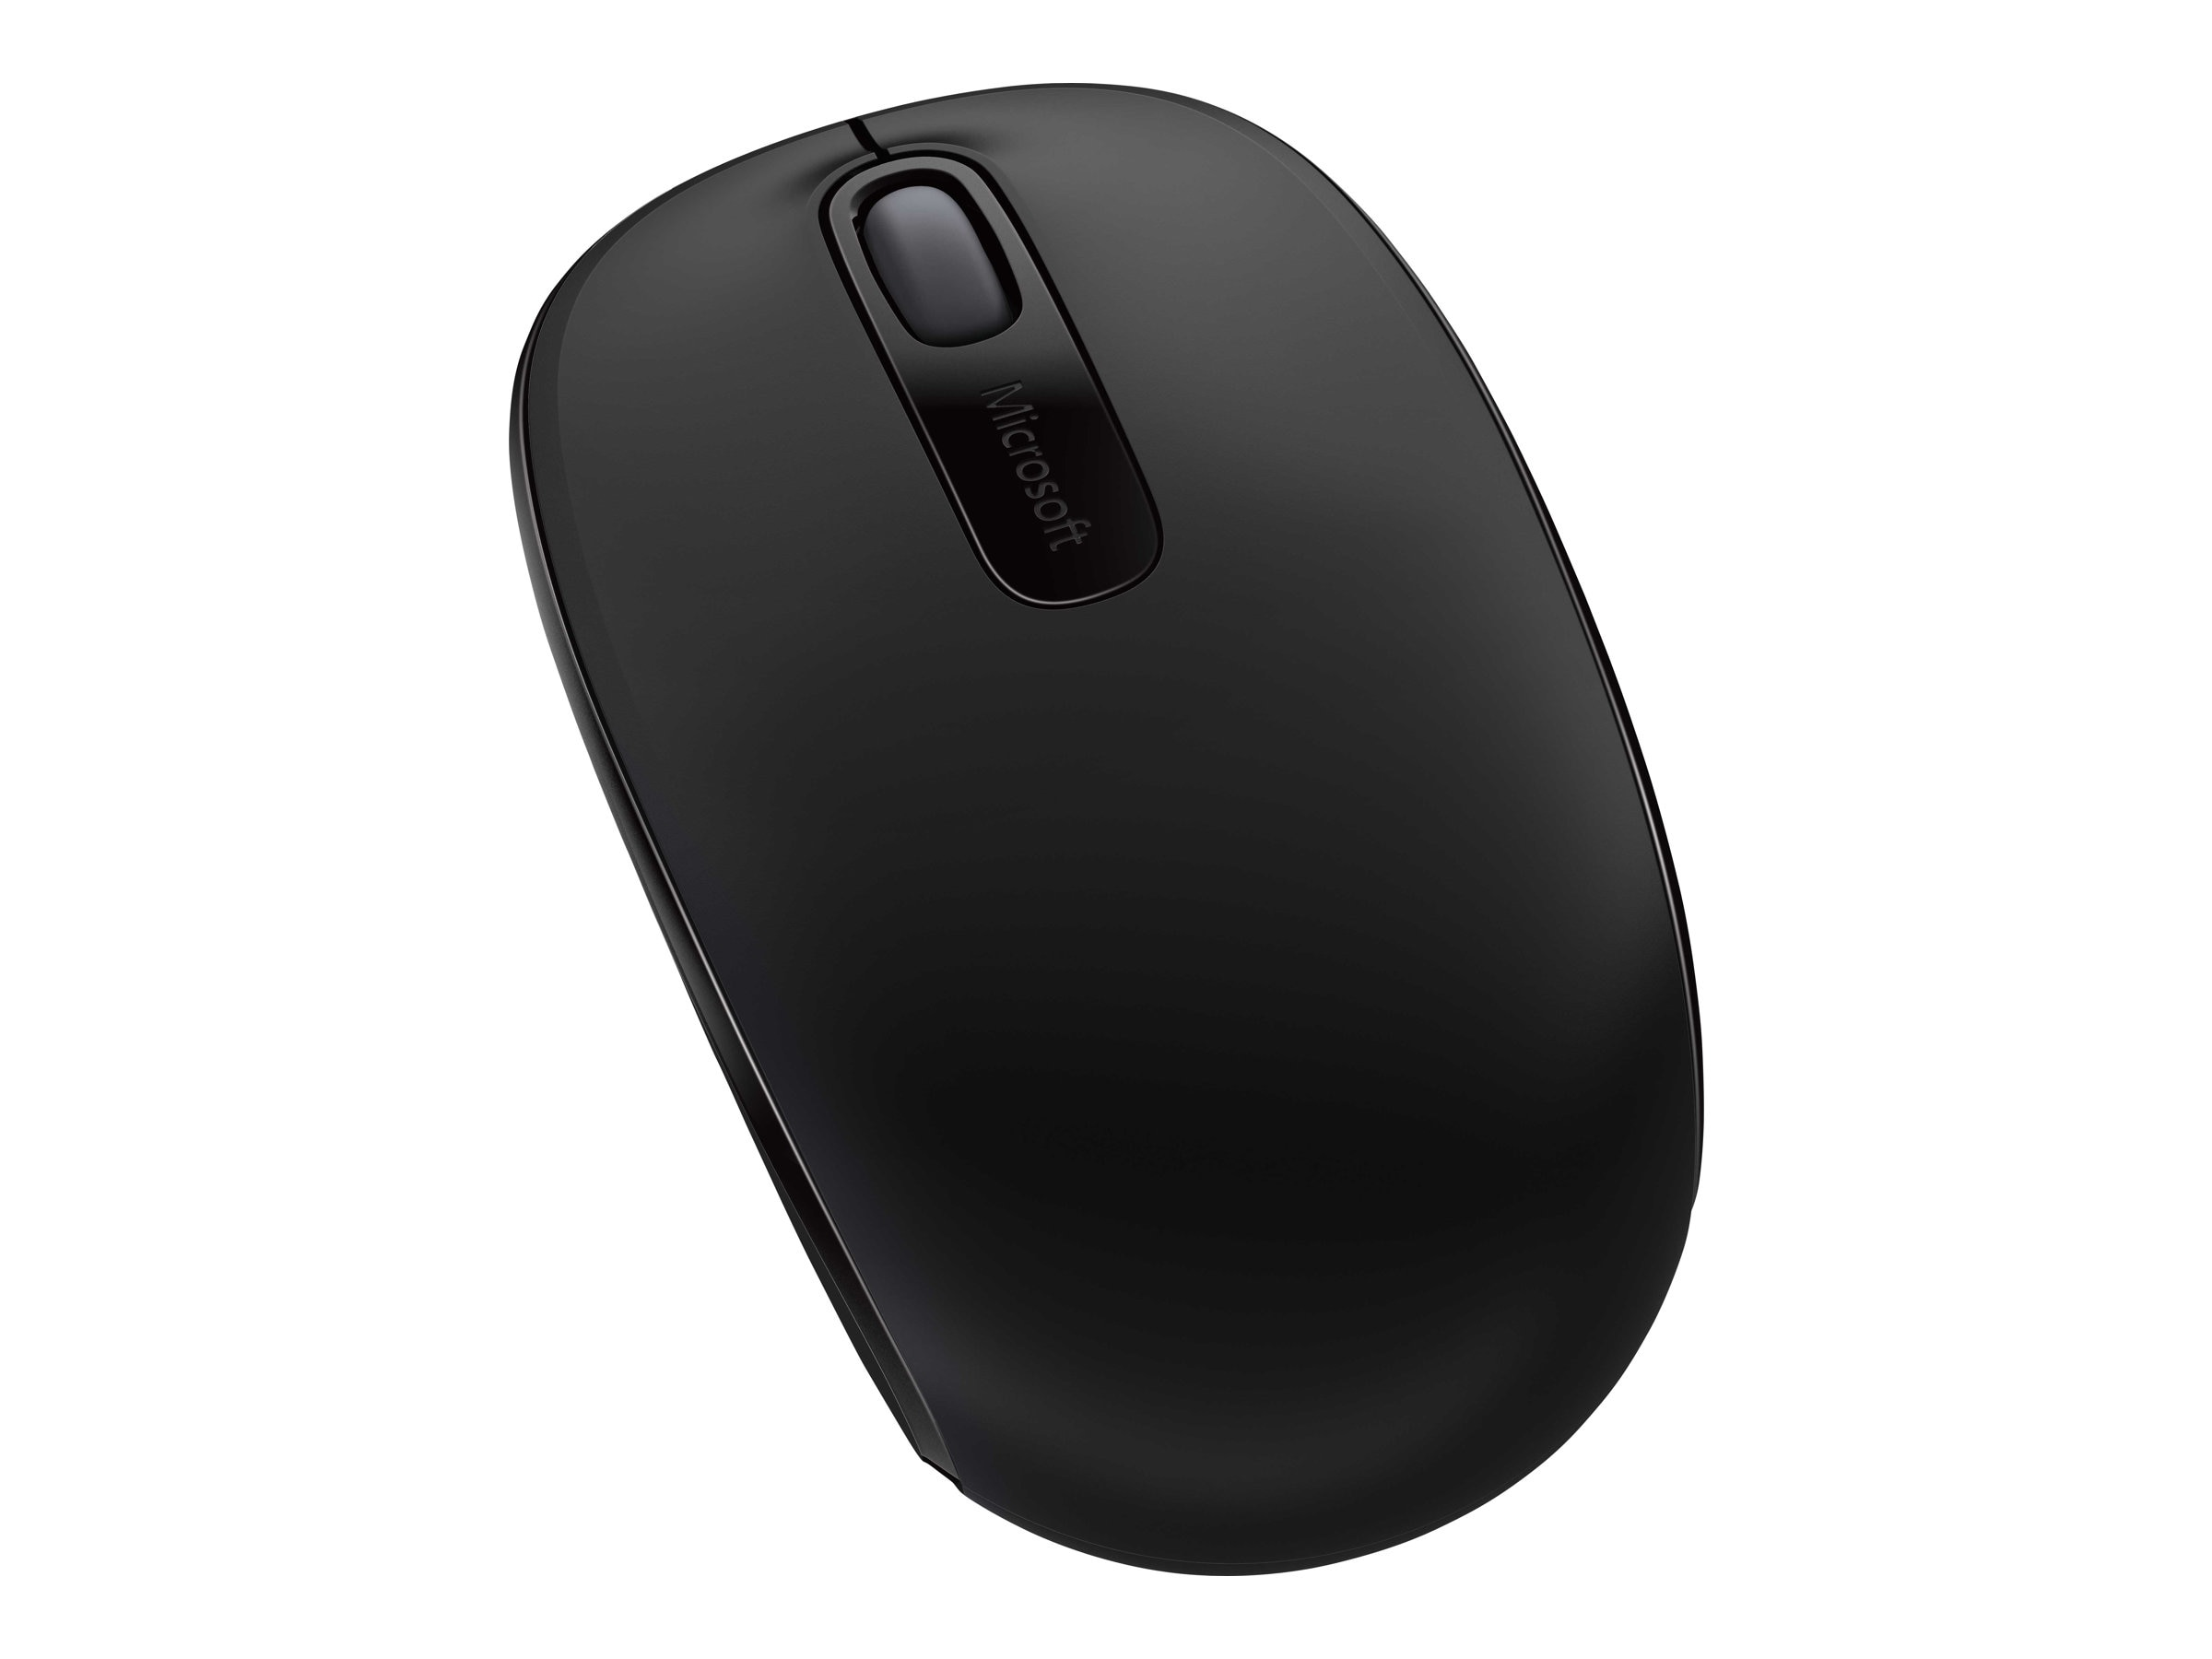 Microsoft Wireless Mobile Mouse 1850 for Business, Black, 7MM-00001, 20079342, Mice & Cursor Control Devices